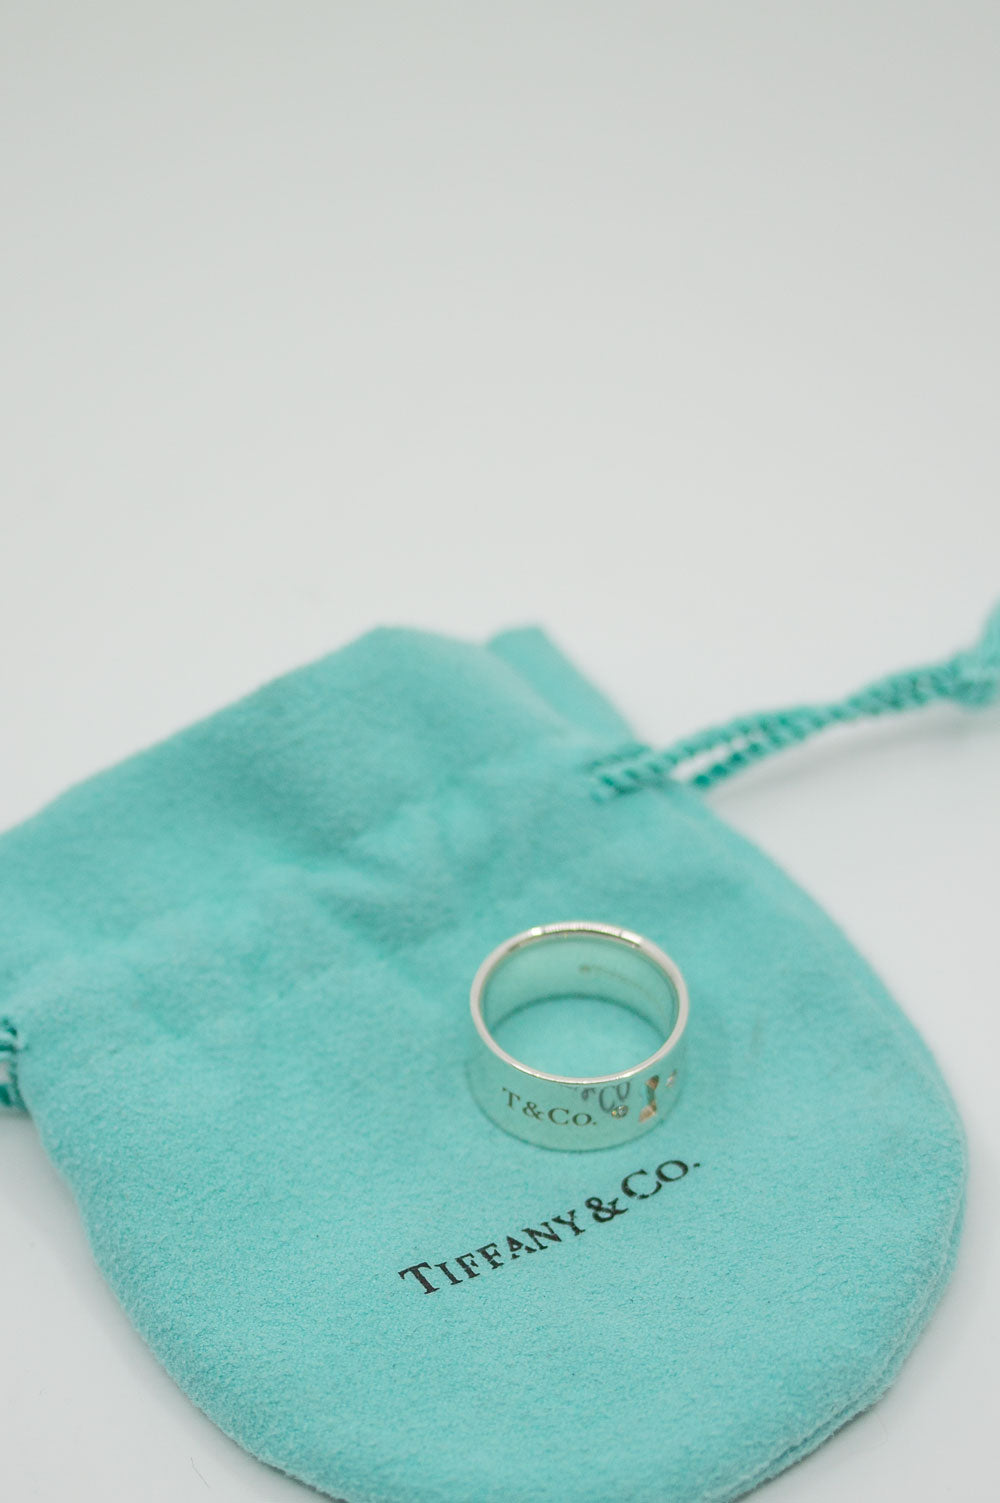 TIFFANY&CO. Ring Keyhole Silver with Diamonds